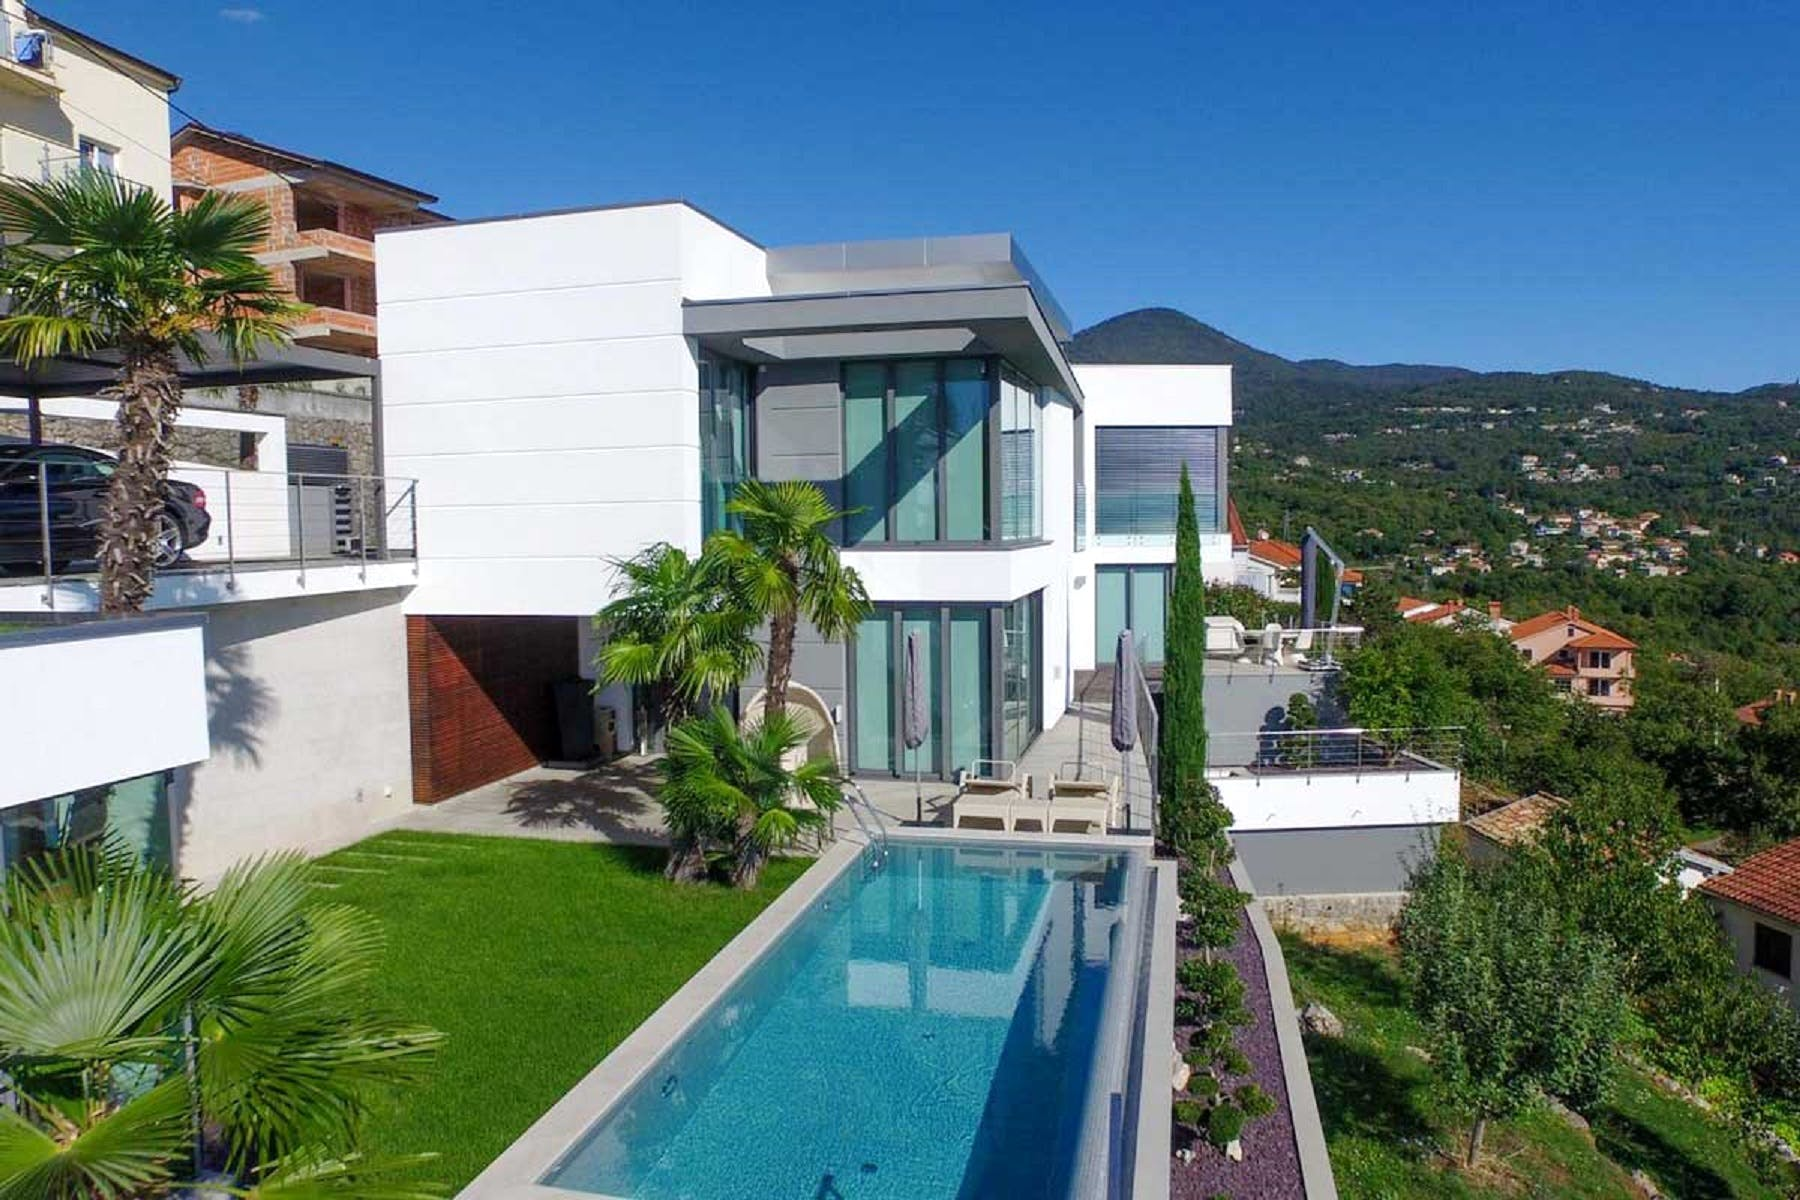 Property is enriched with a private pool